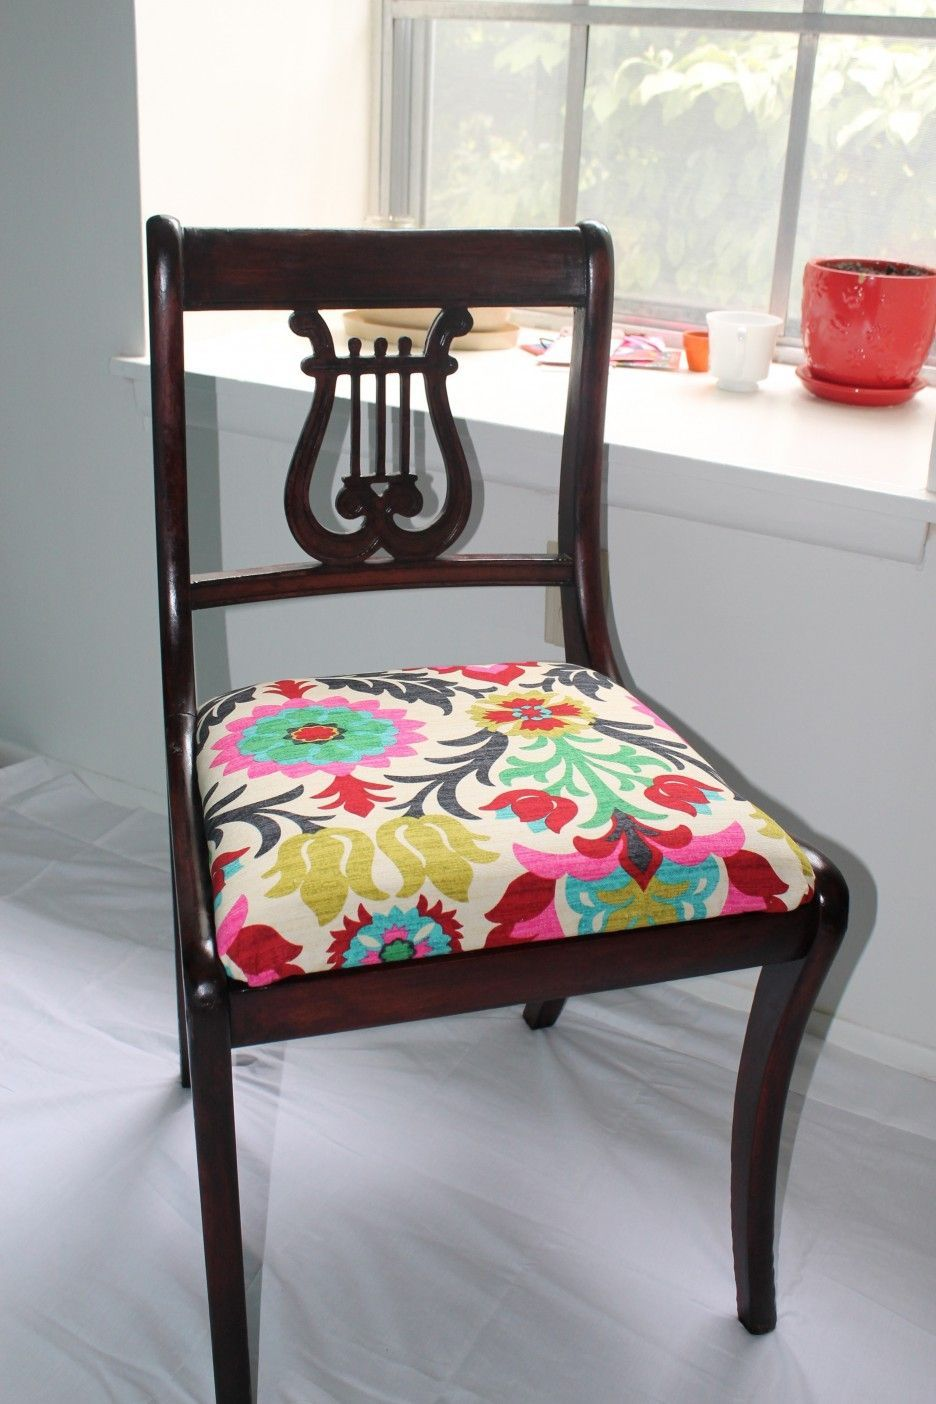 Furniture how much does it cost to reupholster a chair